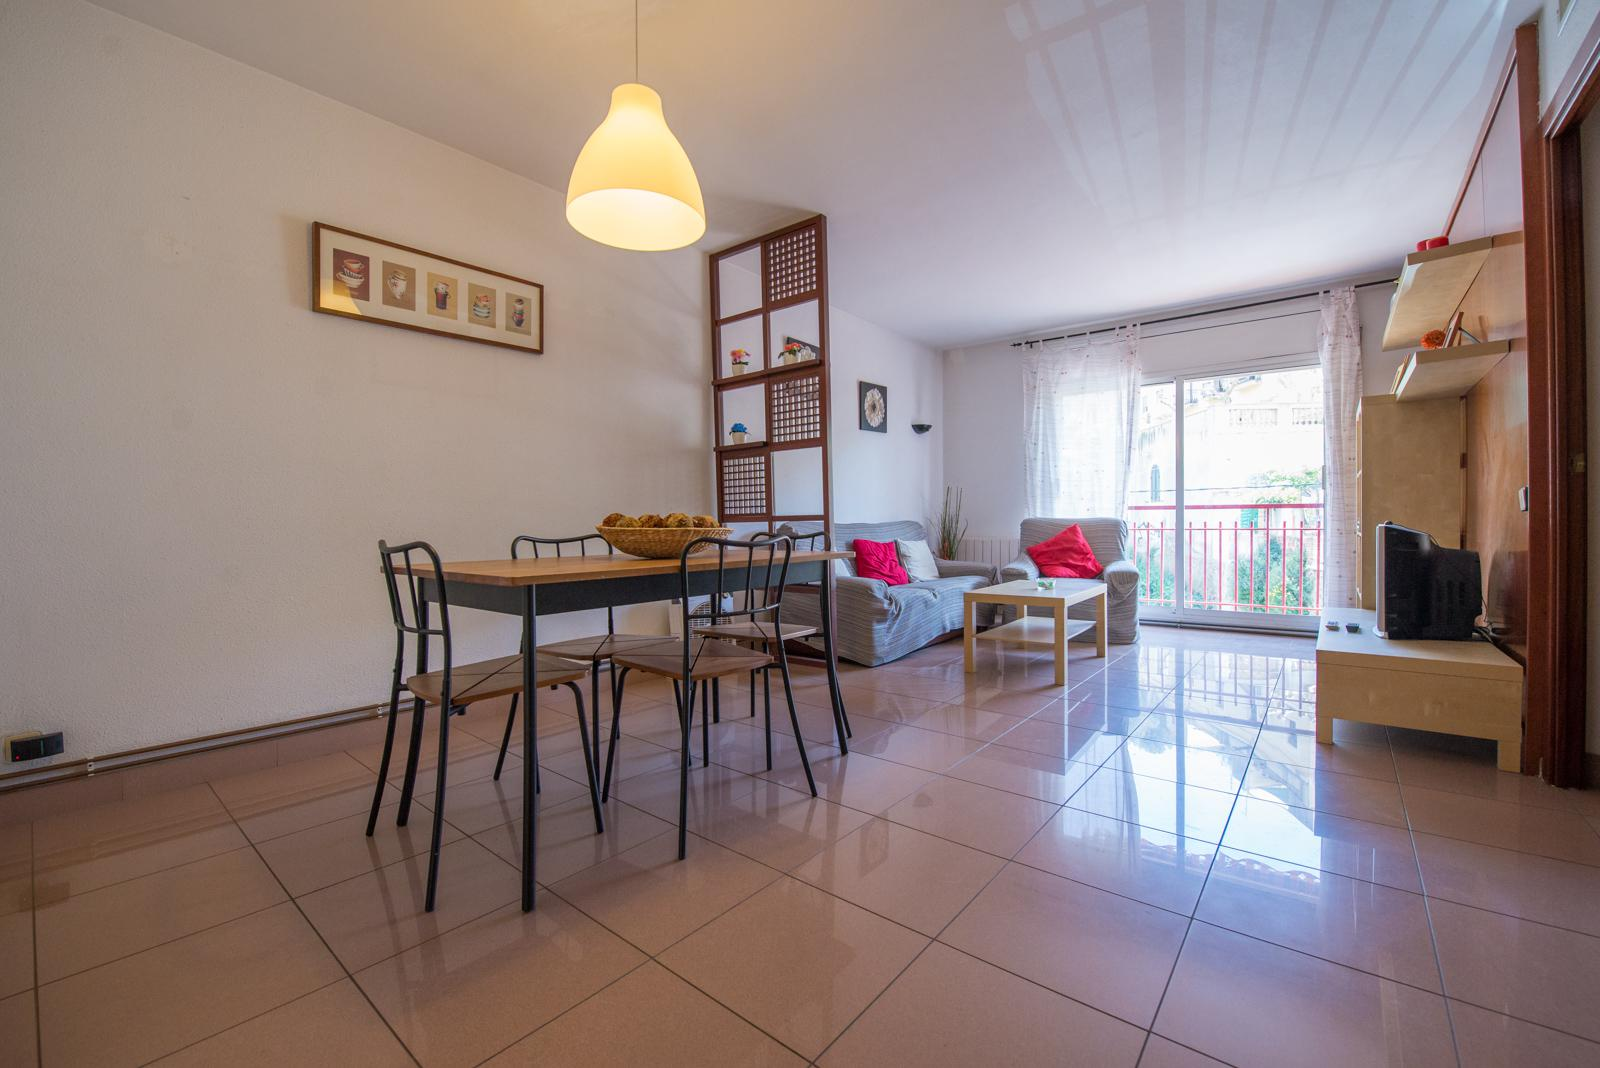 flat-for-sale-in-jto-rubens-gracia-el-coll-in-barcelona